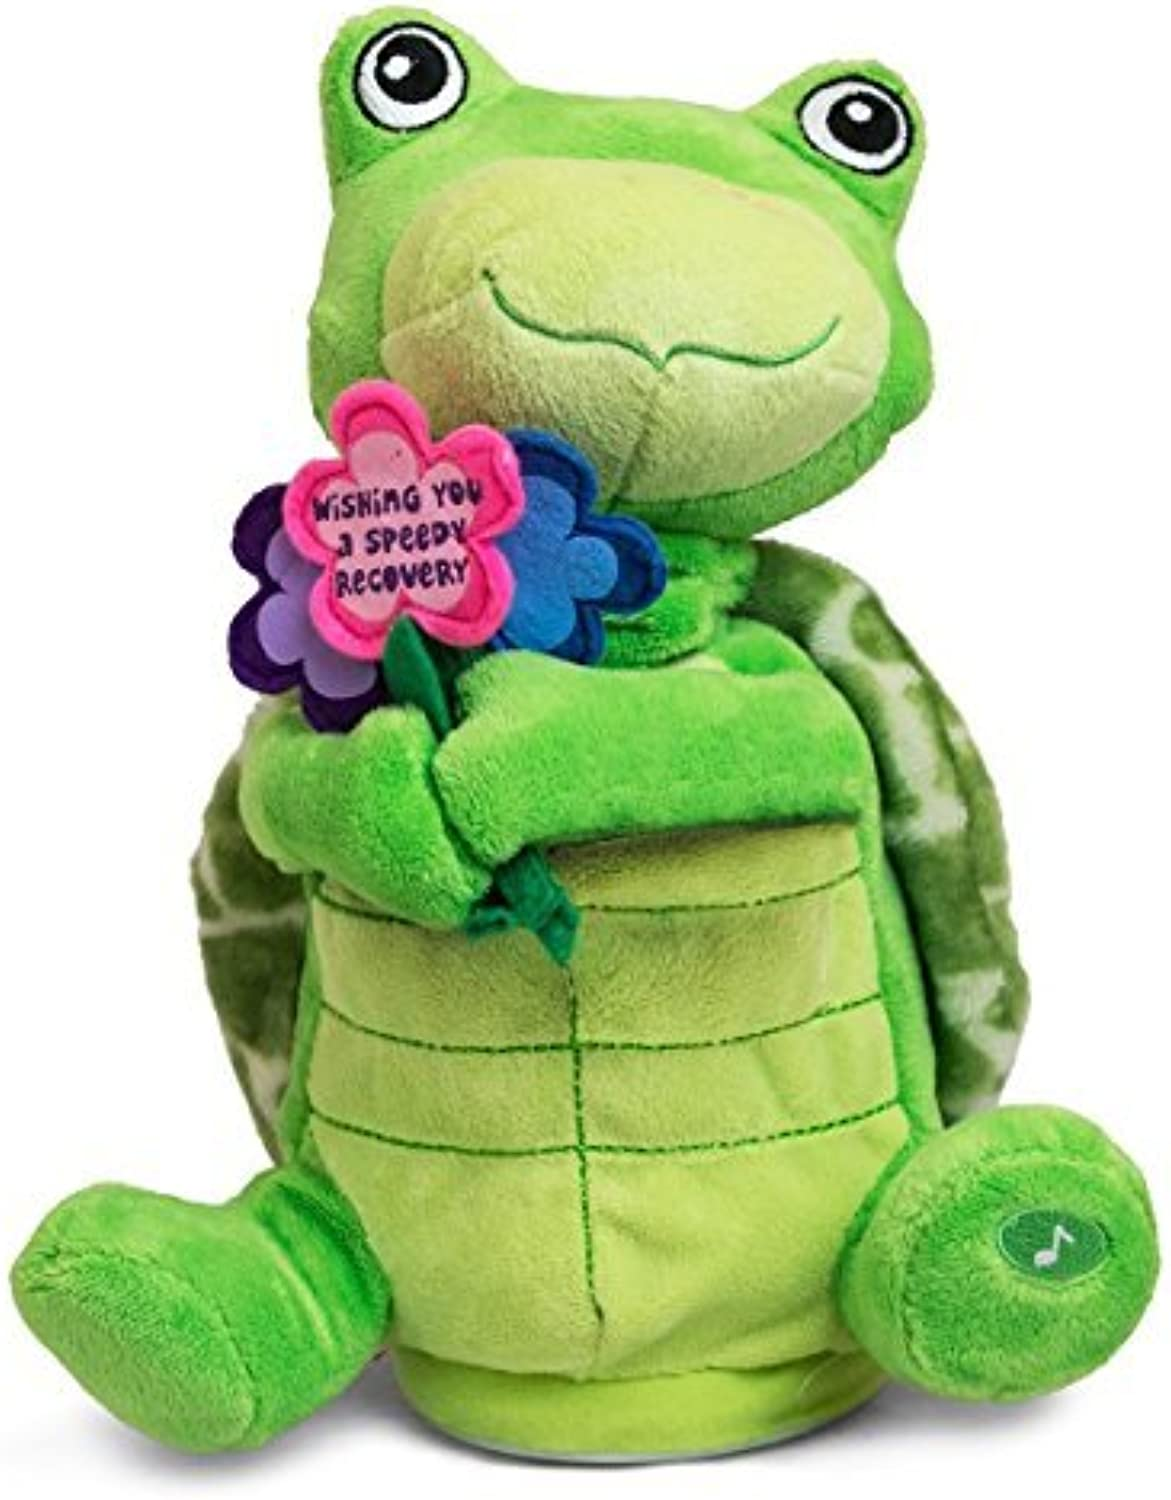 comprar ahora The Petting Zoo Animated Stuffed Stuffed Stuffed Turtle, Wishing You a Speedy Recovery by The Petting Zoo  descuento de bajo precio